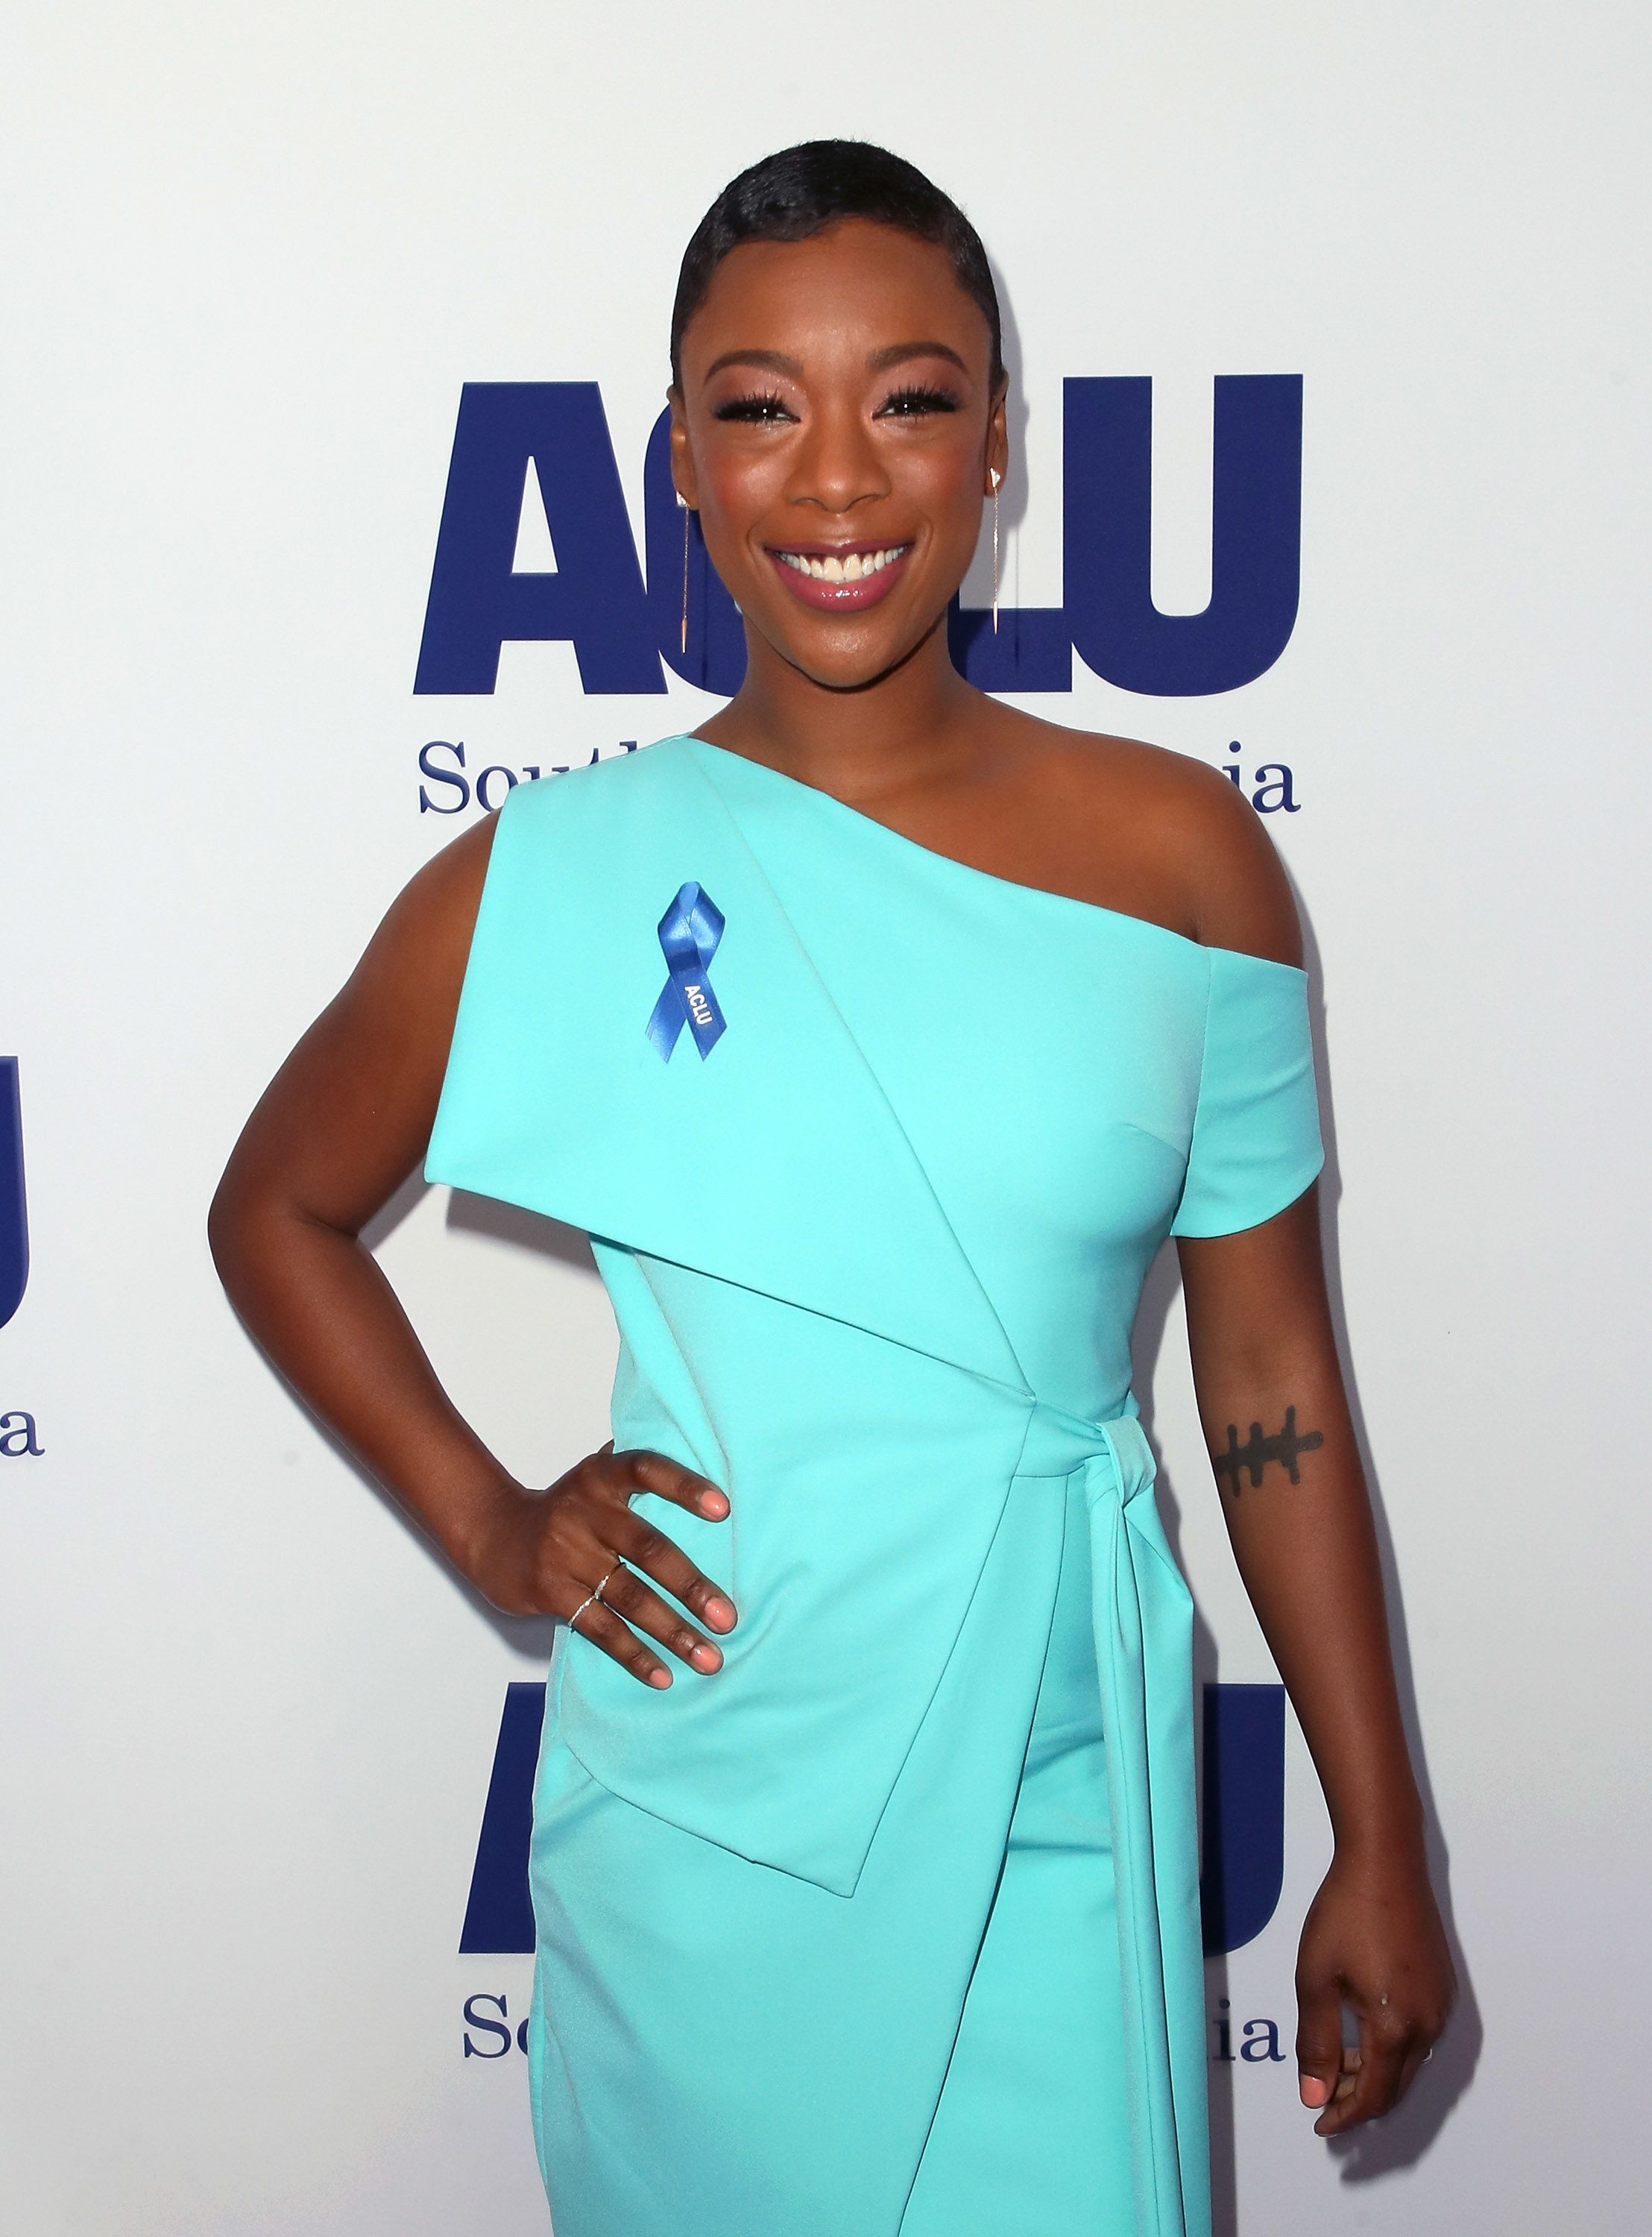 Samira Wiley Reduced To Tears After Being Outed By 'Orange Is The New Black'